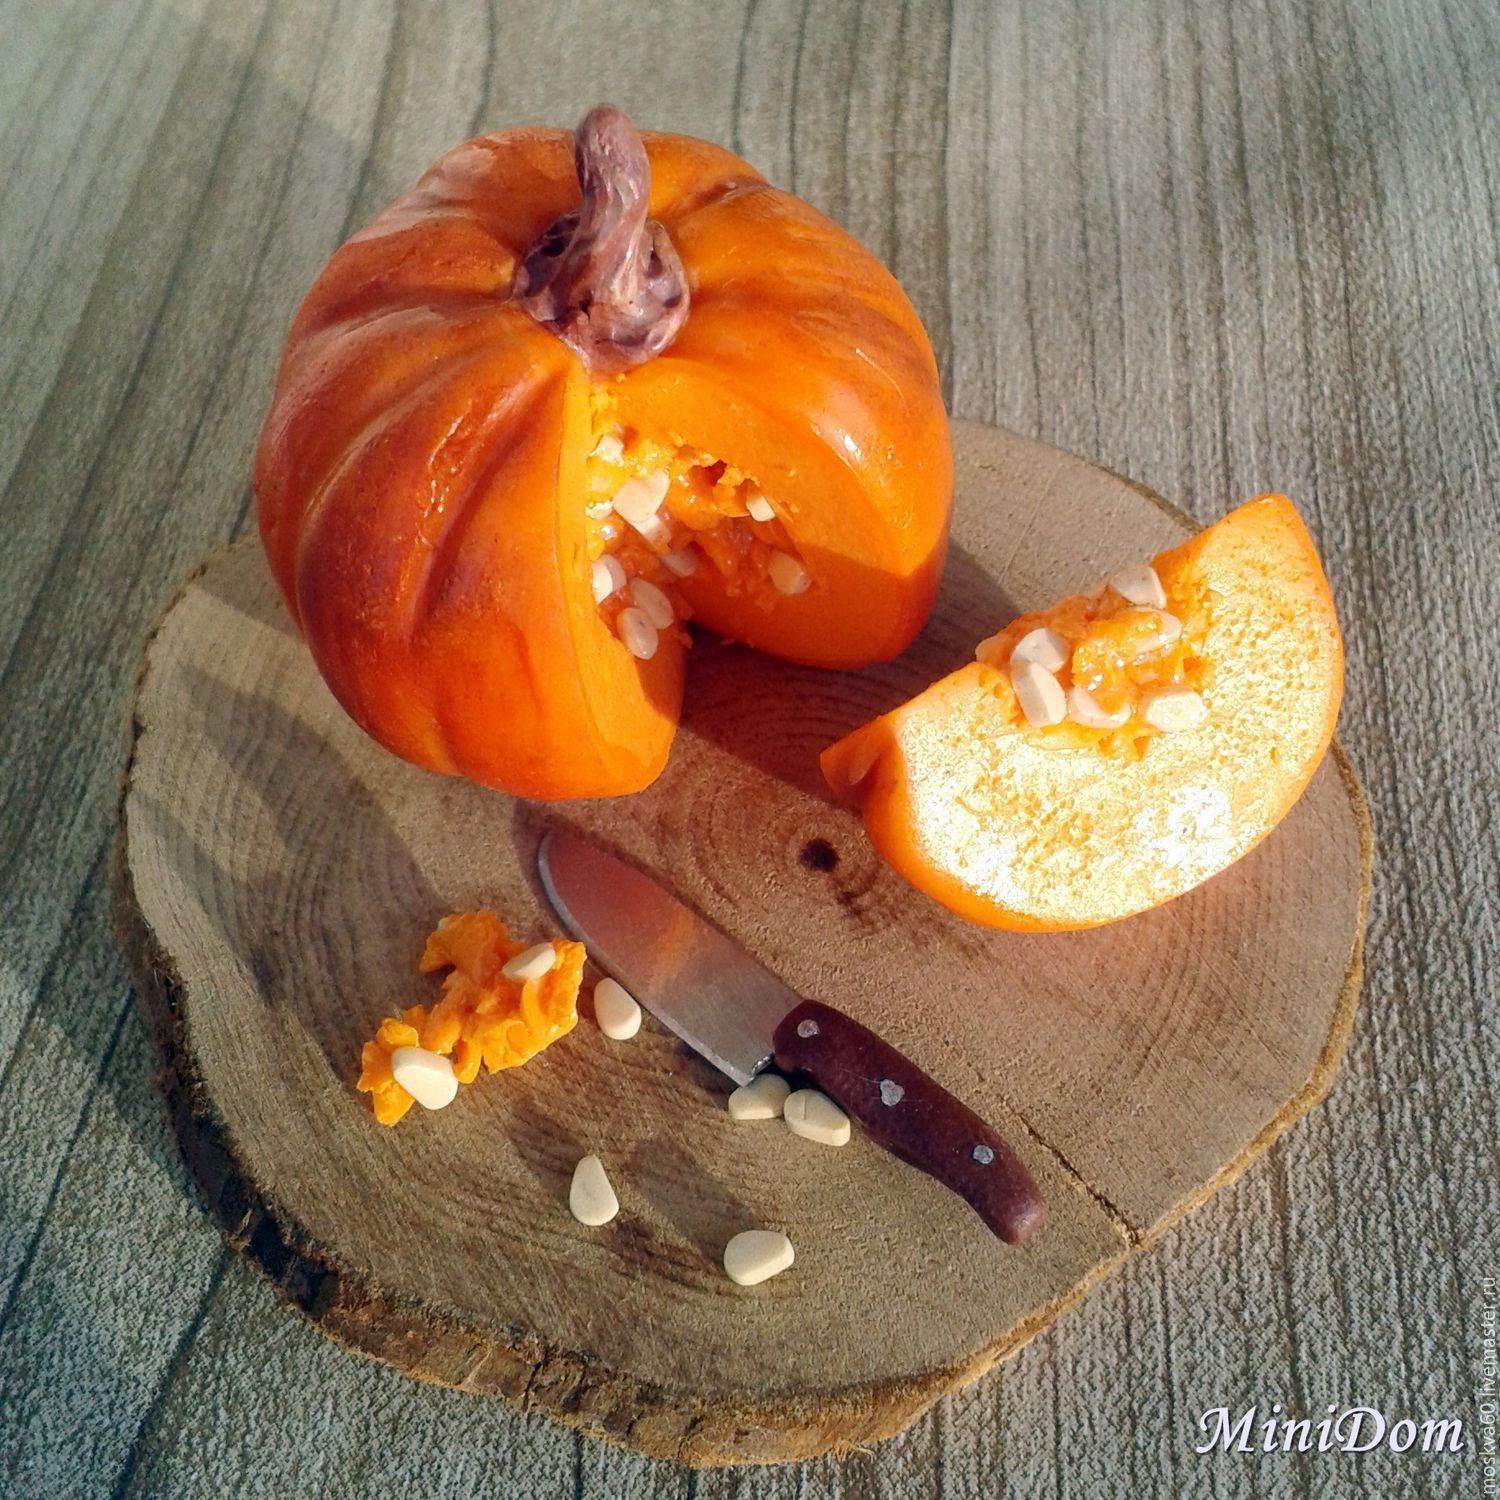 Food for dolls - Pumpkin for dollhouse miniature in twelfth scale 1 12, Doll food, Moscow,  Фото №1